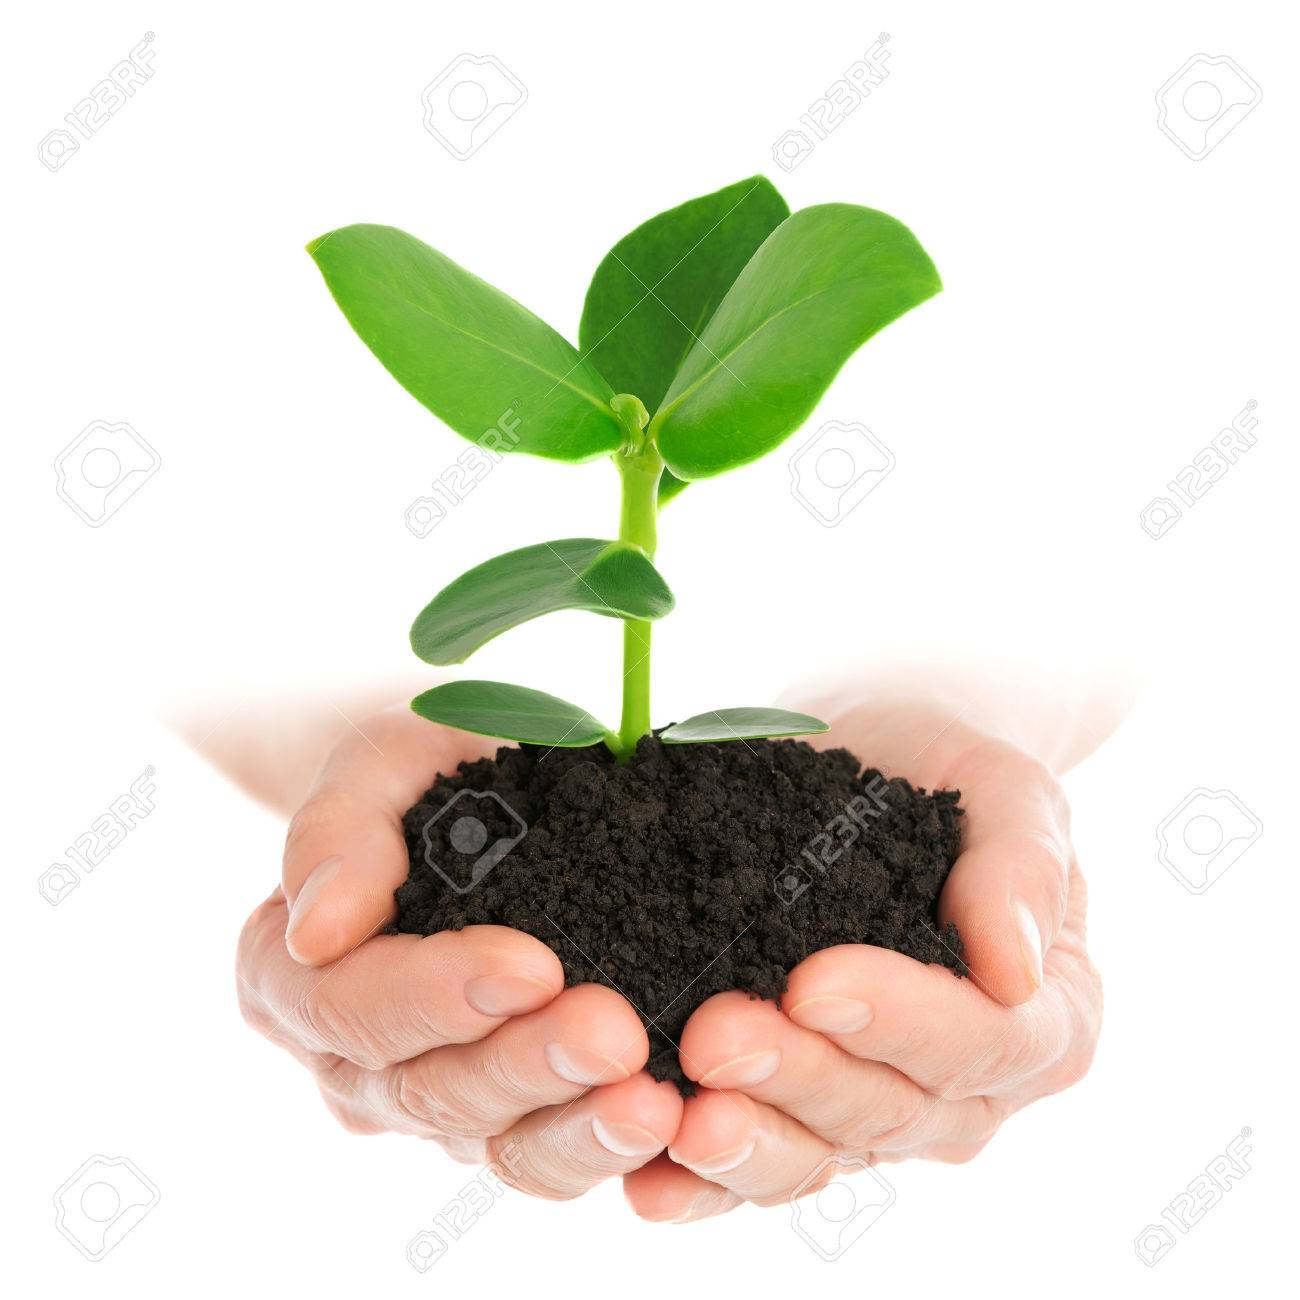 Green plant in hand new life - 41664951